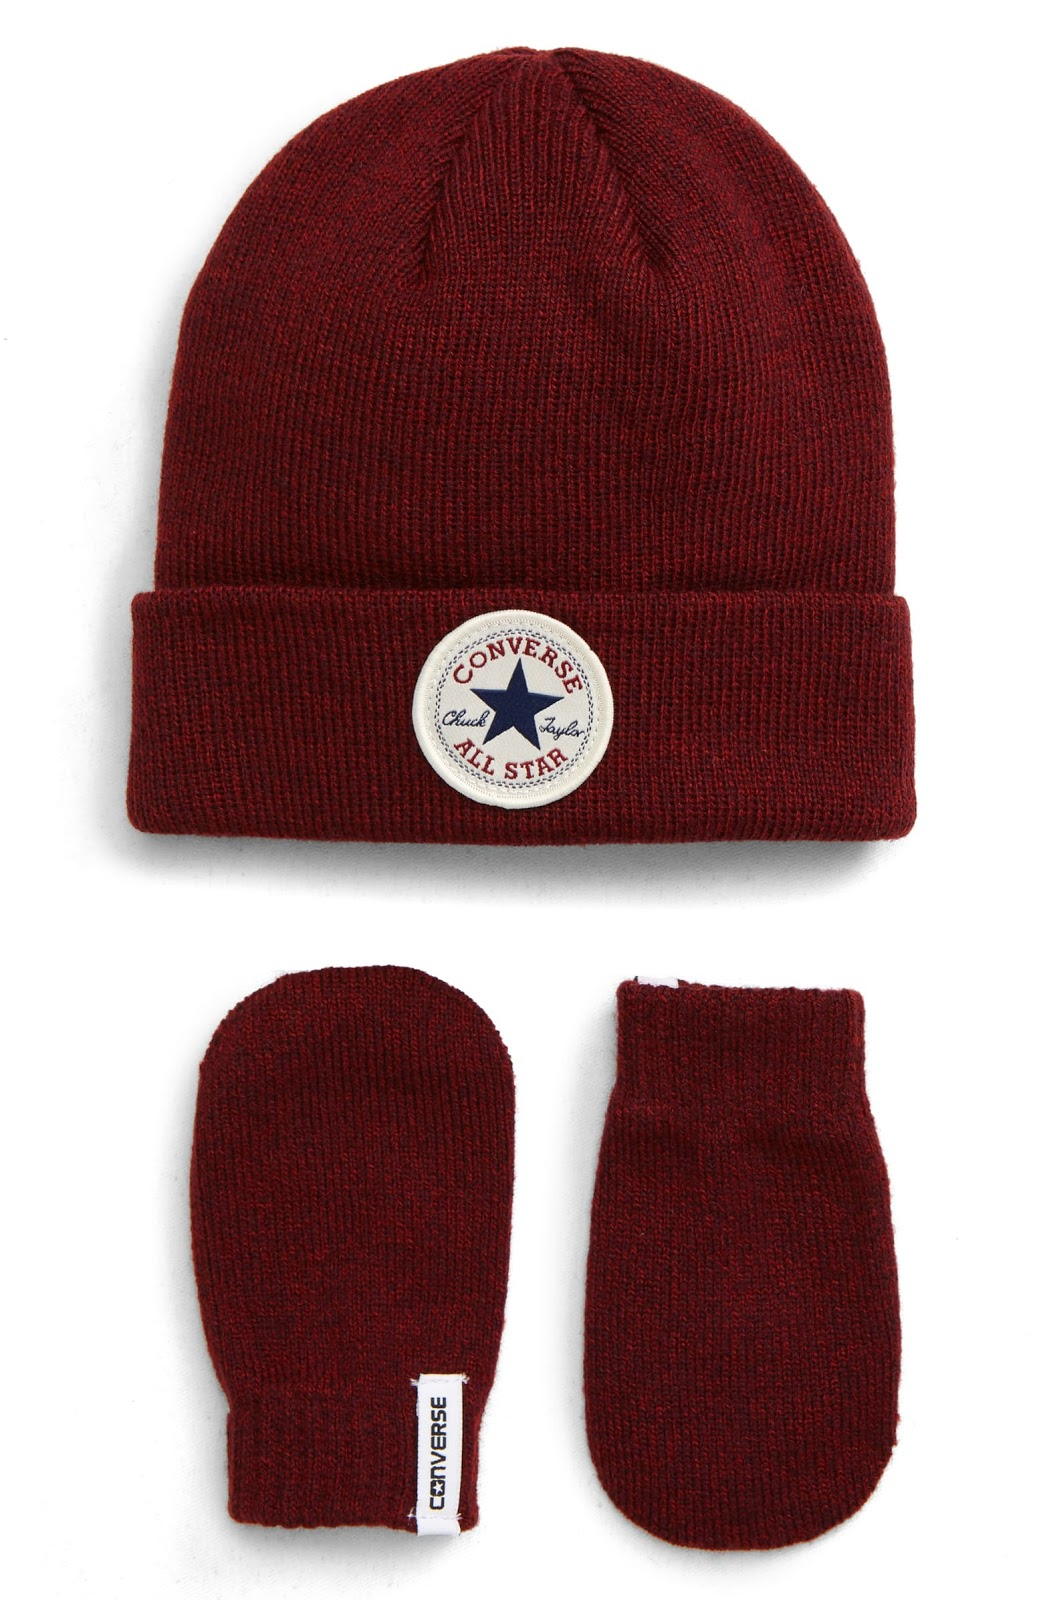 A red hat and mitten set.